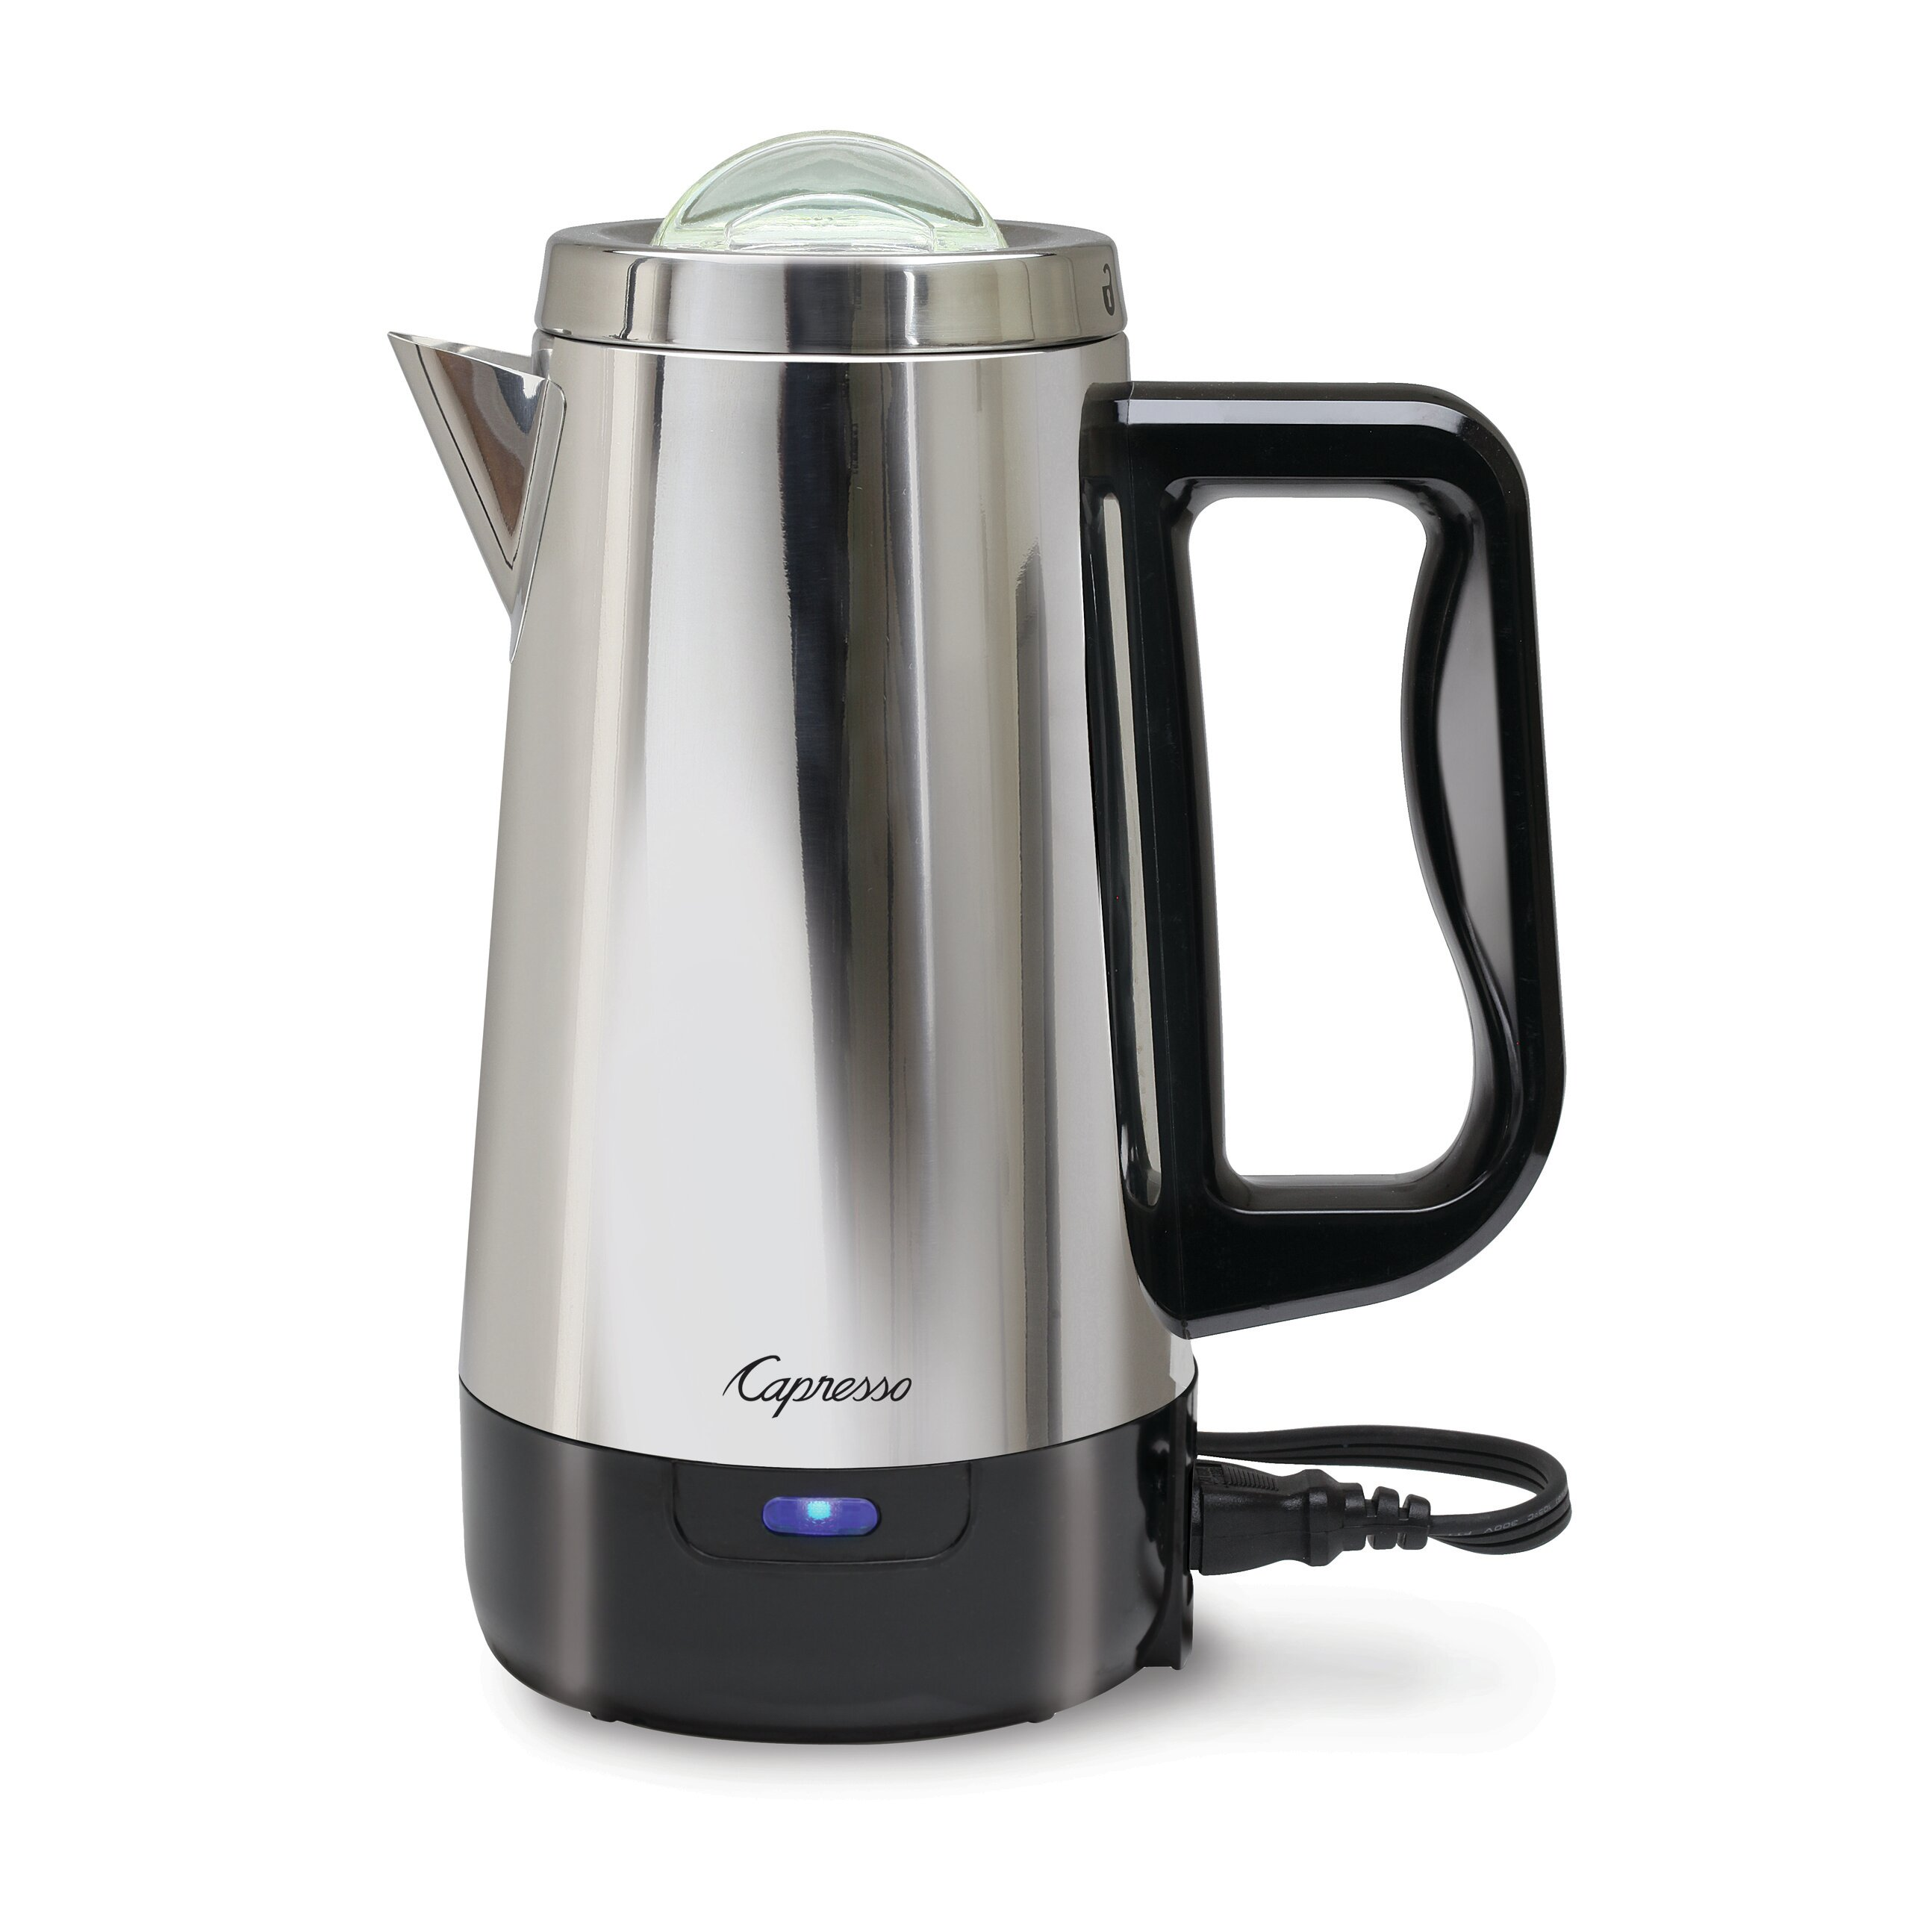 Coffee Maker With Percolator : Capresso 8 Cup Perk Coffee Maker & Reviews Wayfair